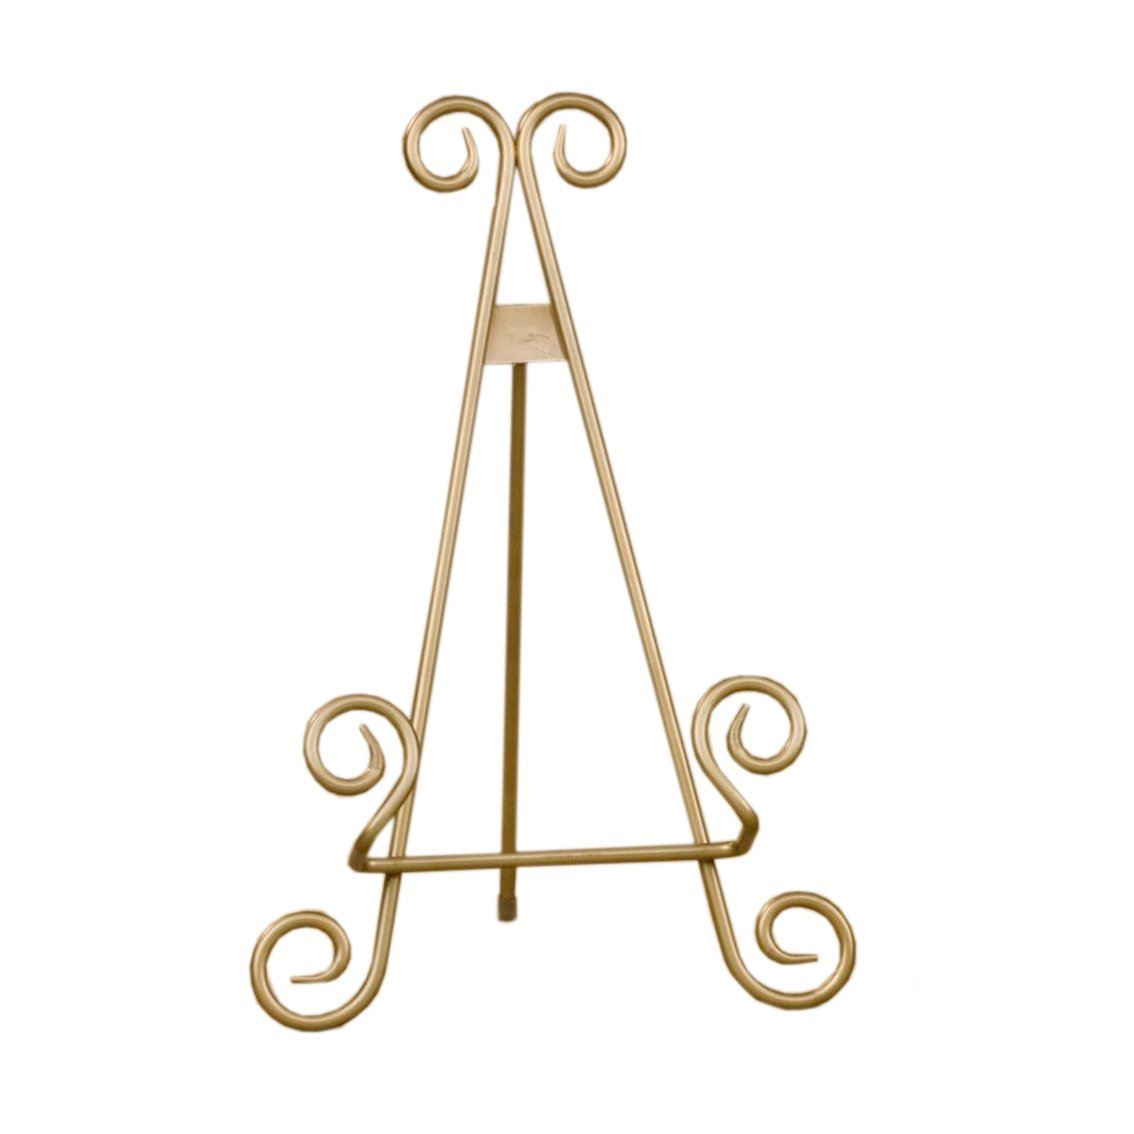 PS123AS 11 Red Co Decorative Curved Metal Plate Stand and Art Holder Easel in Gold Finish